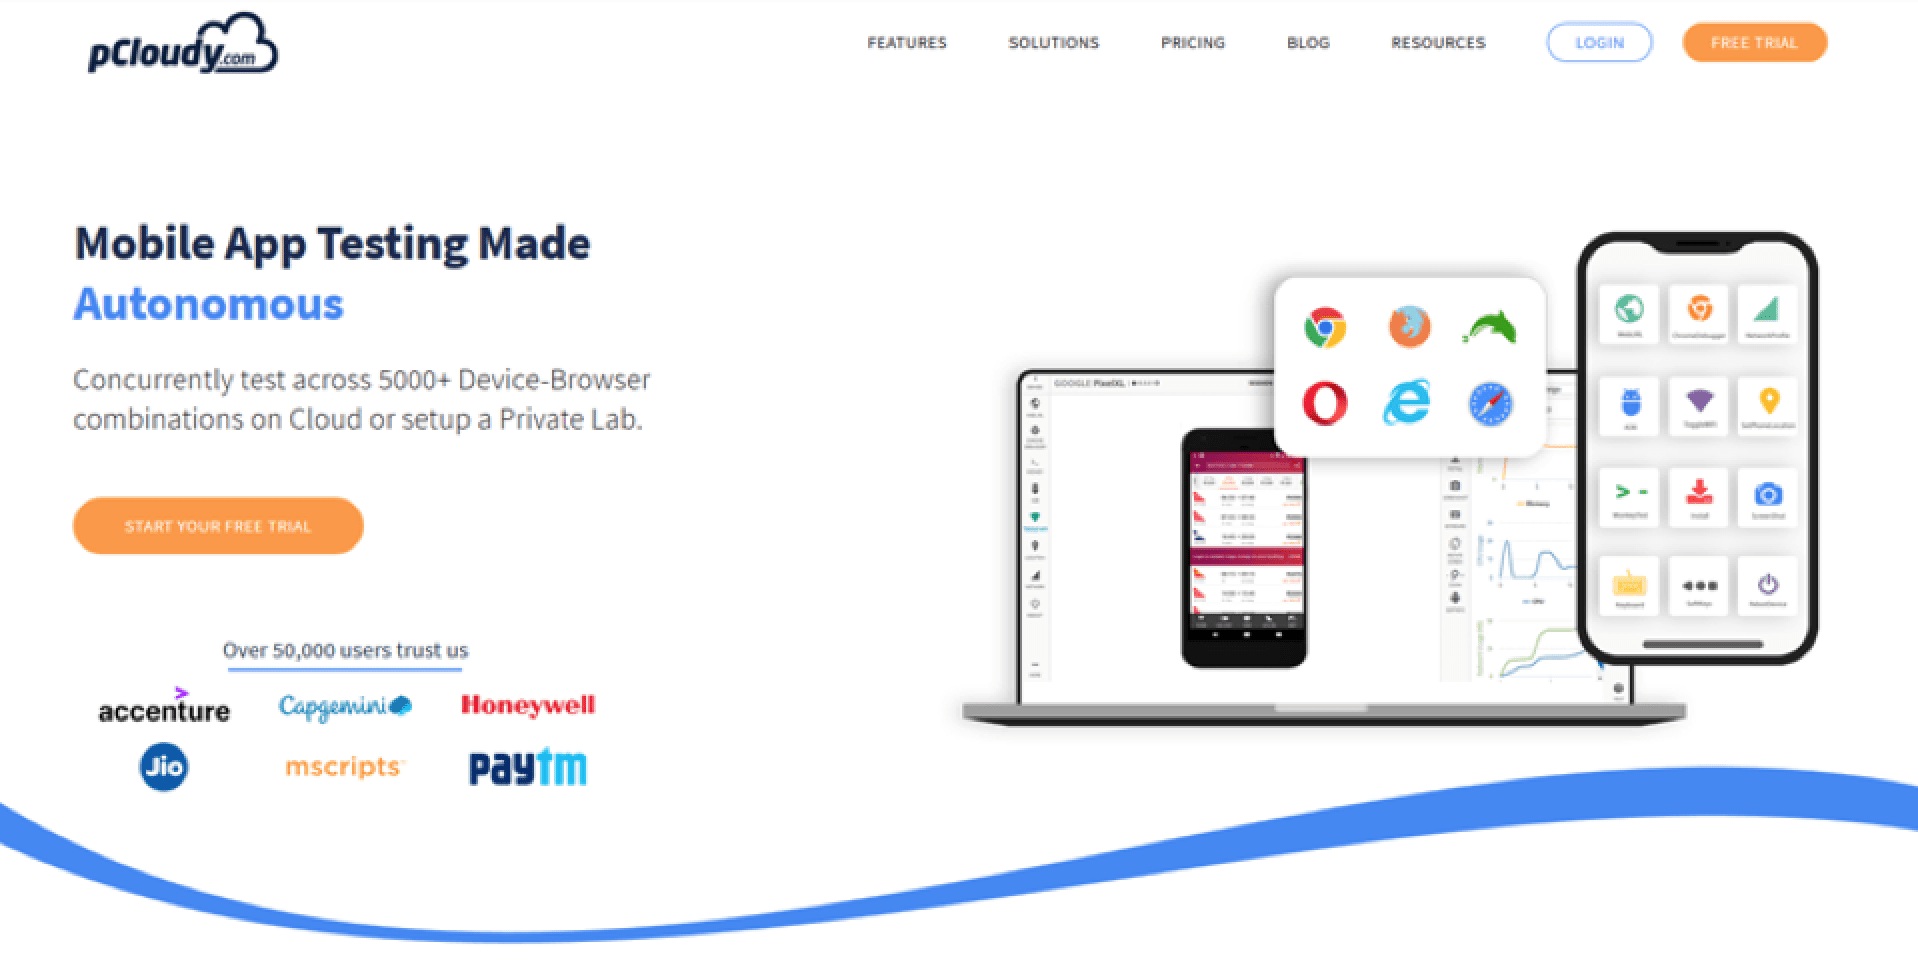 Why Test Mobile Apps With pCloudy?